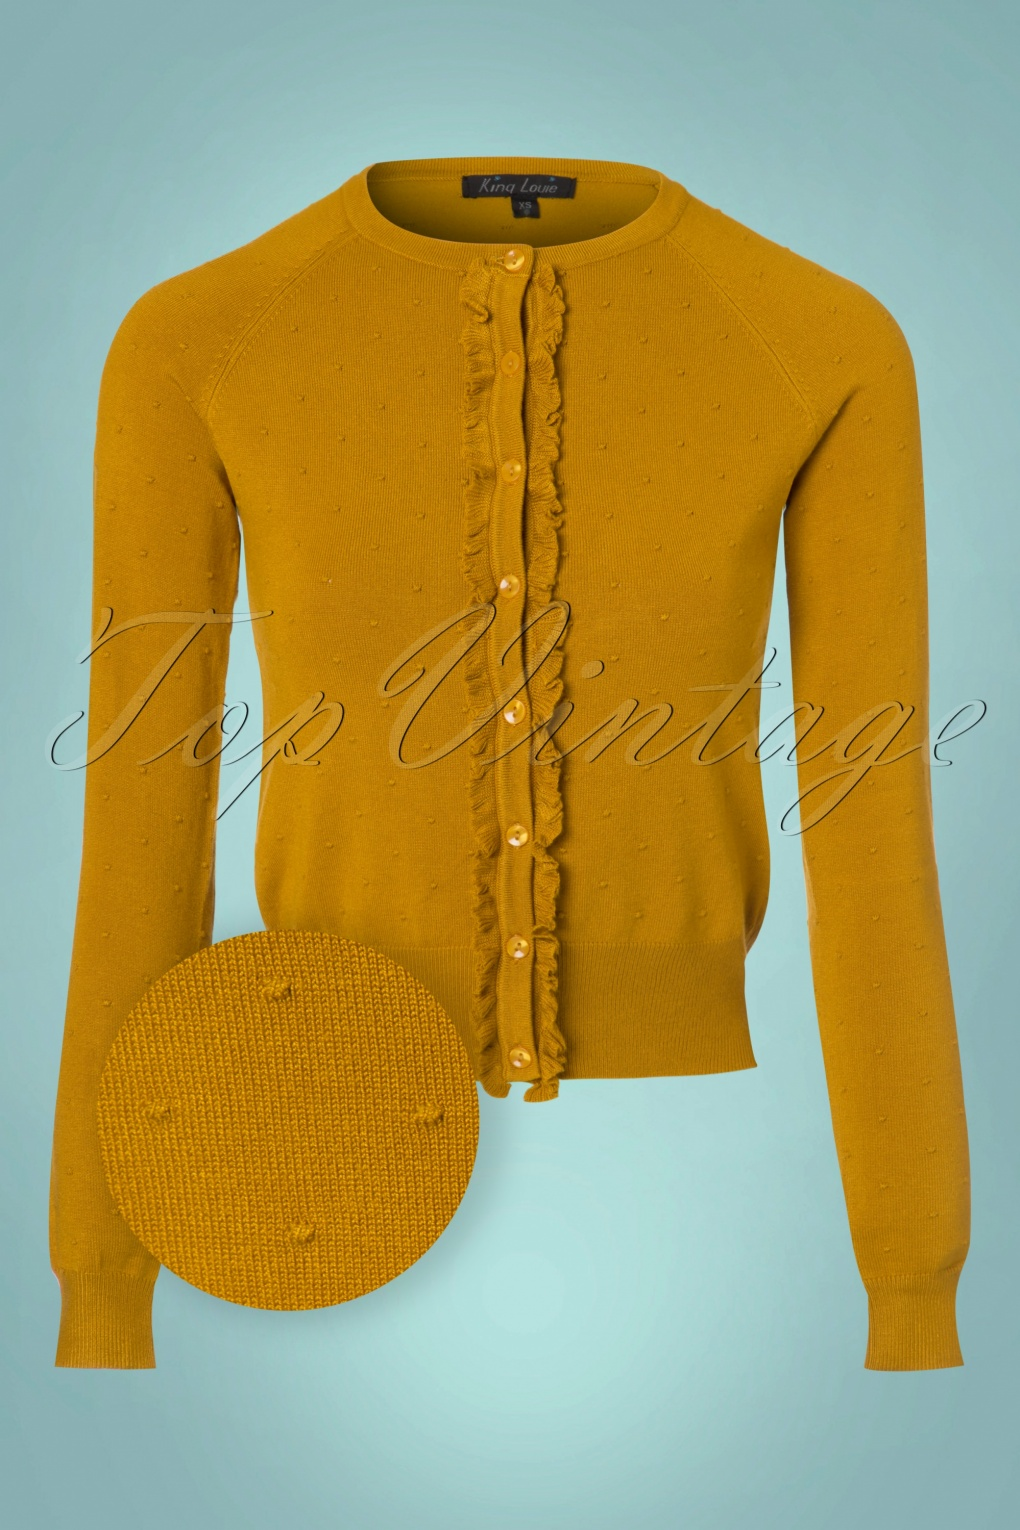 Vintage Sweaters: 1940s, 1950s, 1960s Pictures 60s Ruffle Droplet Fantasy Cardi in Yellow £63.17 AT vintagedancer.com